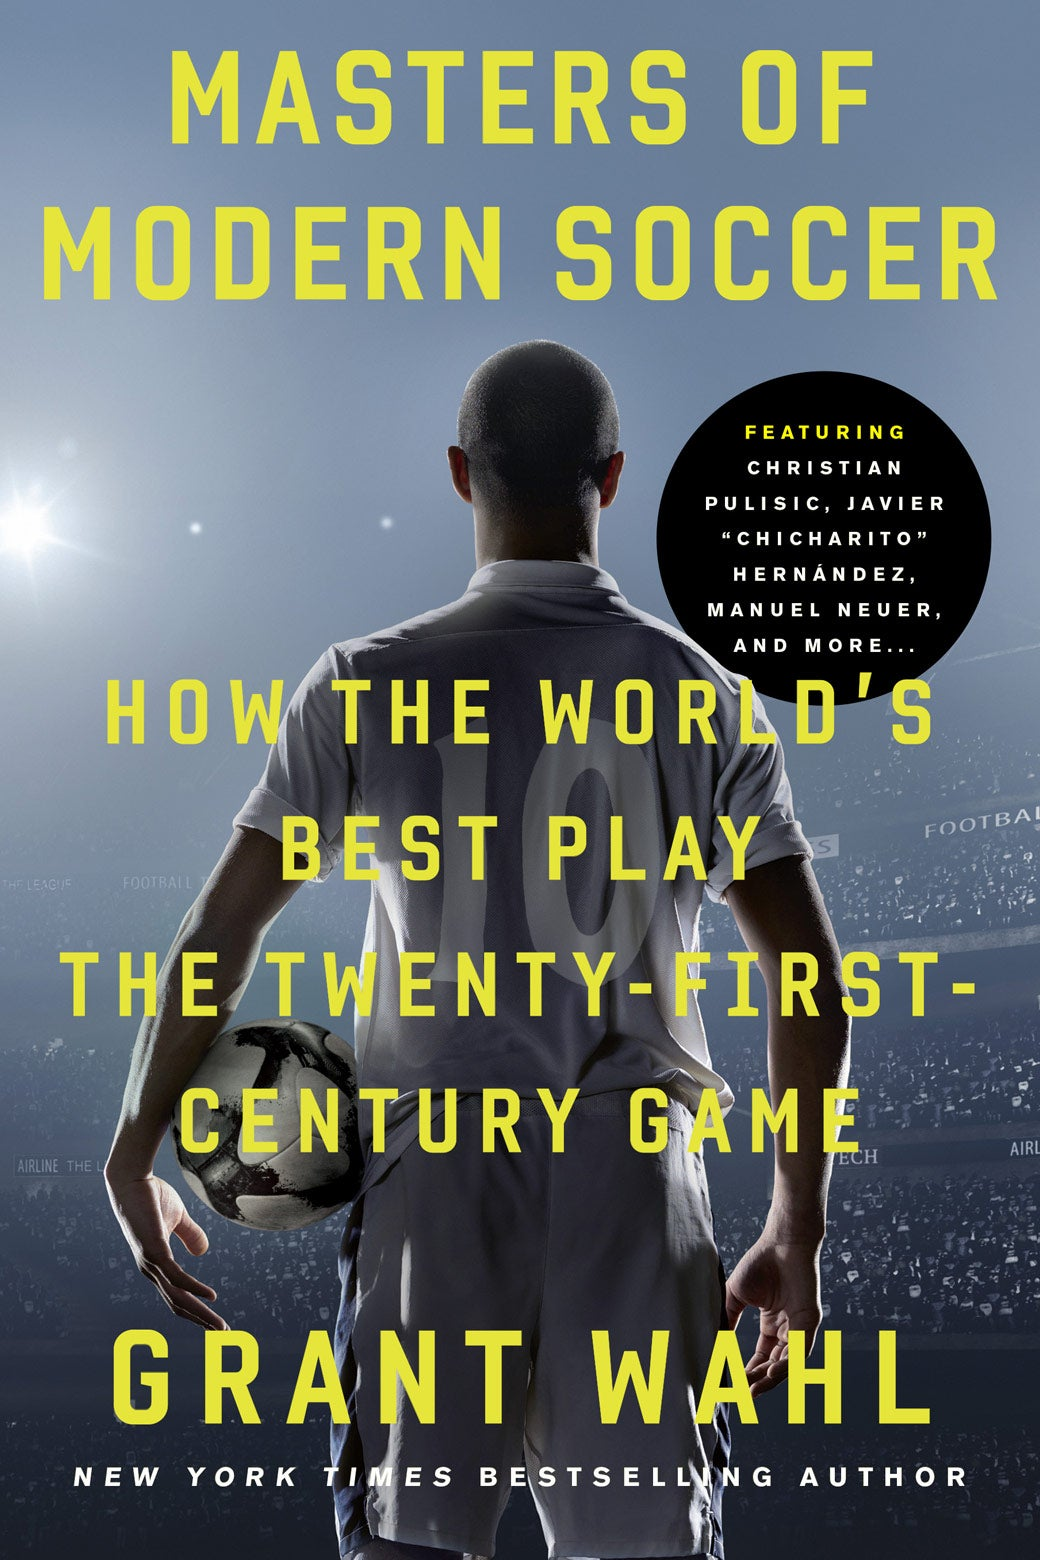 Book cover for Grant Wahl's Masters of Modern Soccer: How the World's Best Play the Twenty-First-Century Game.